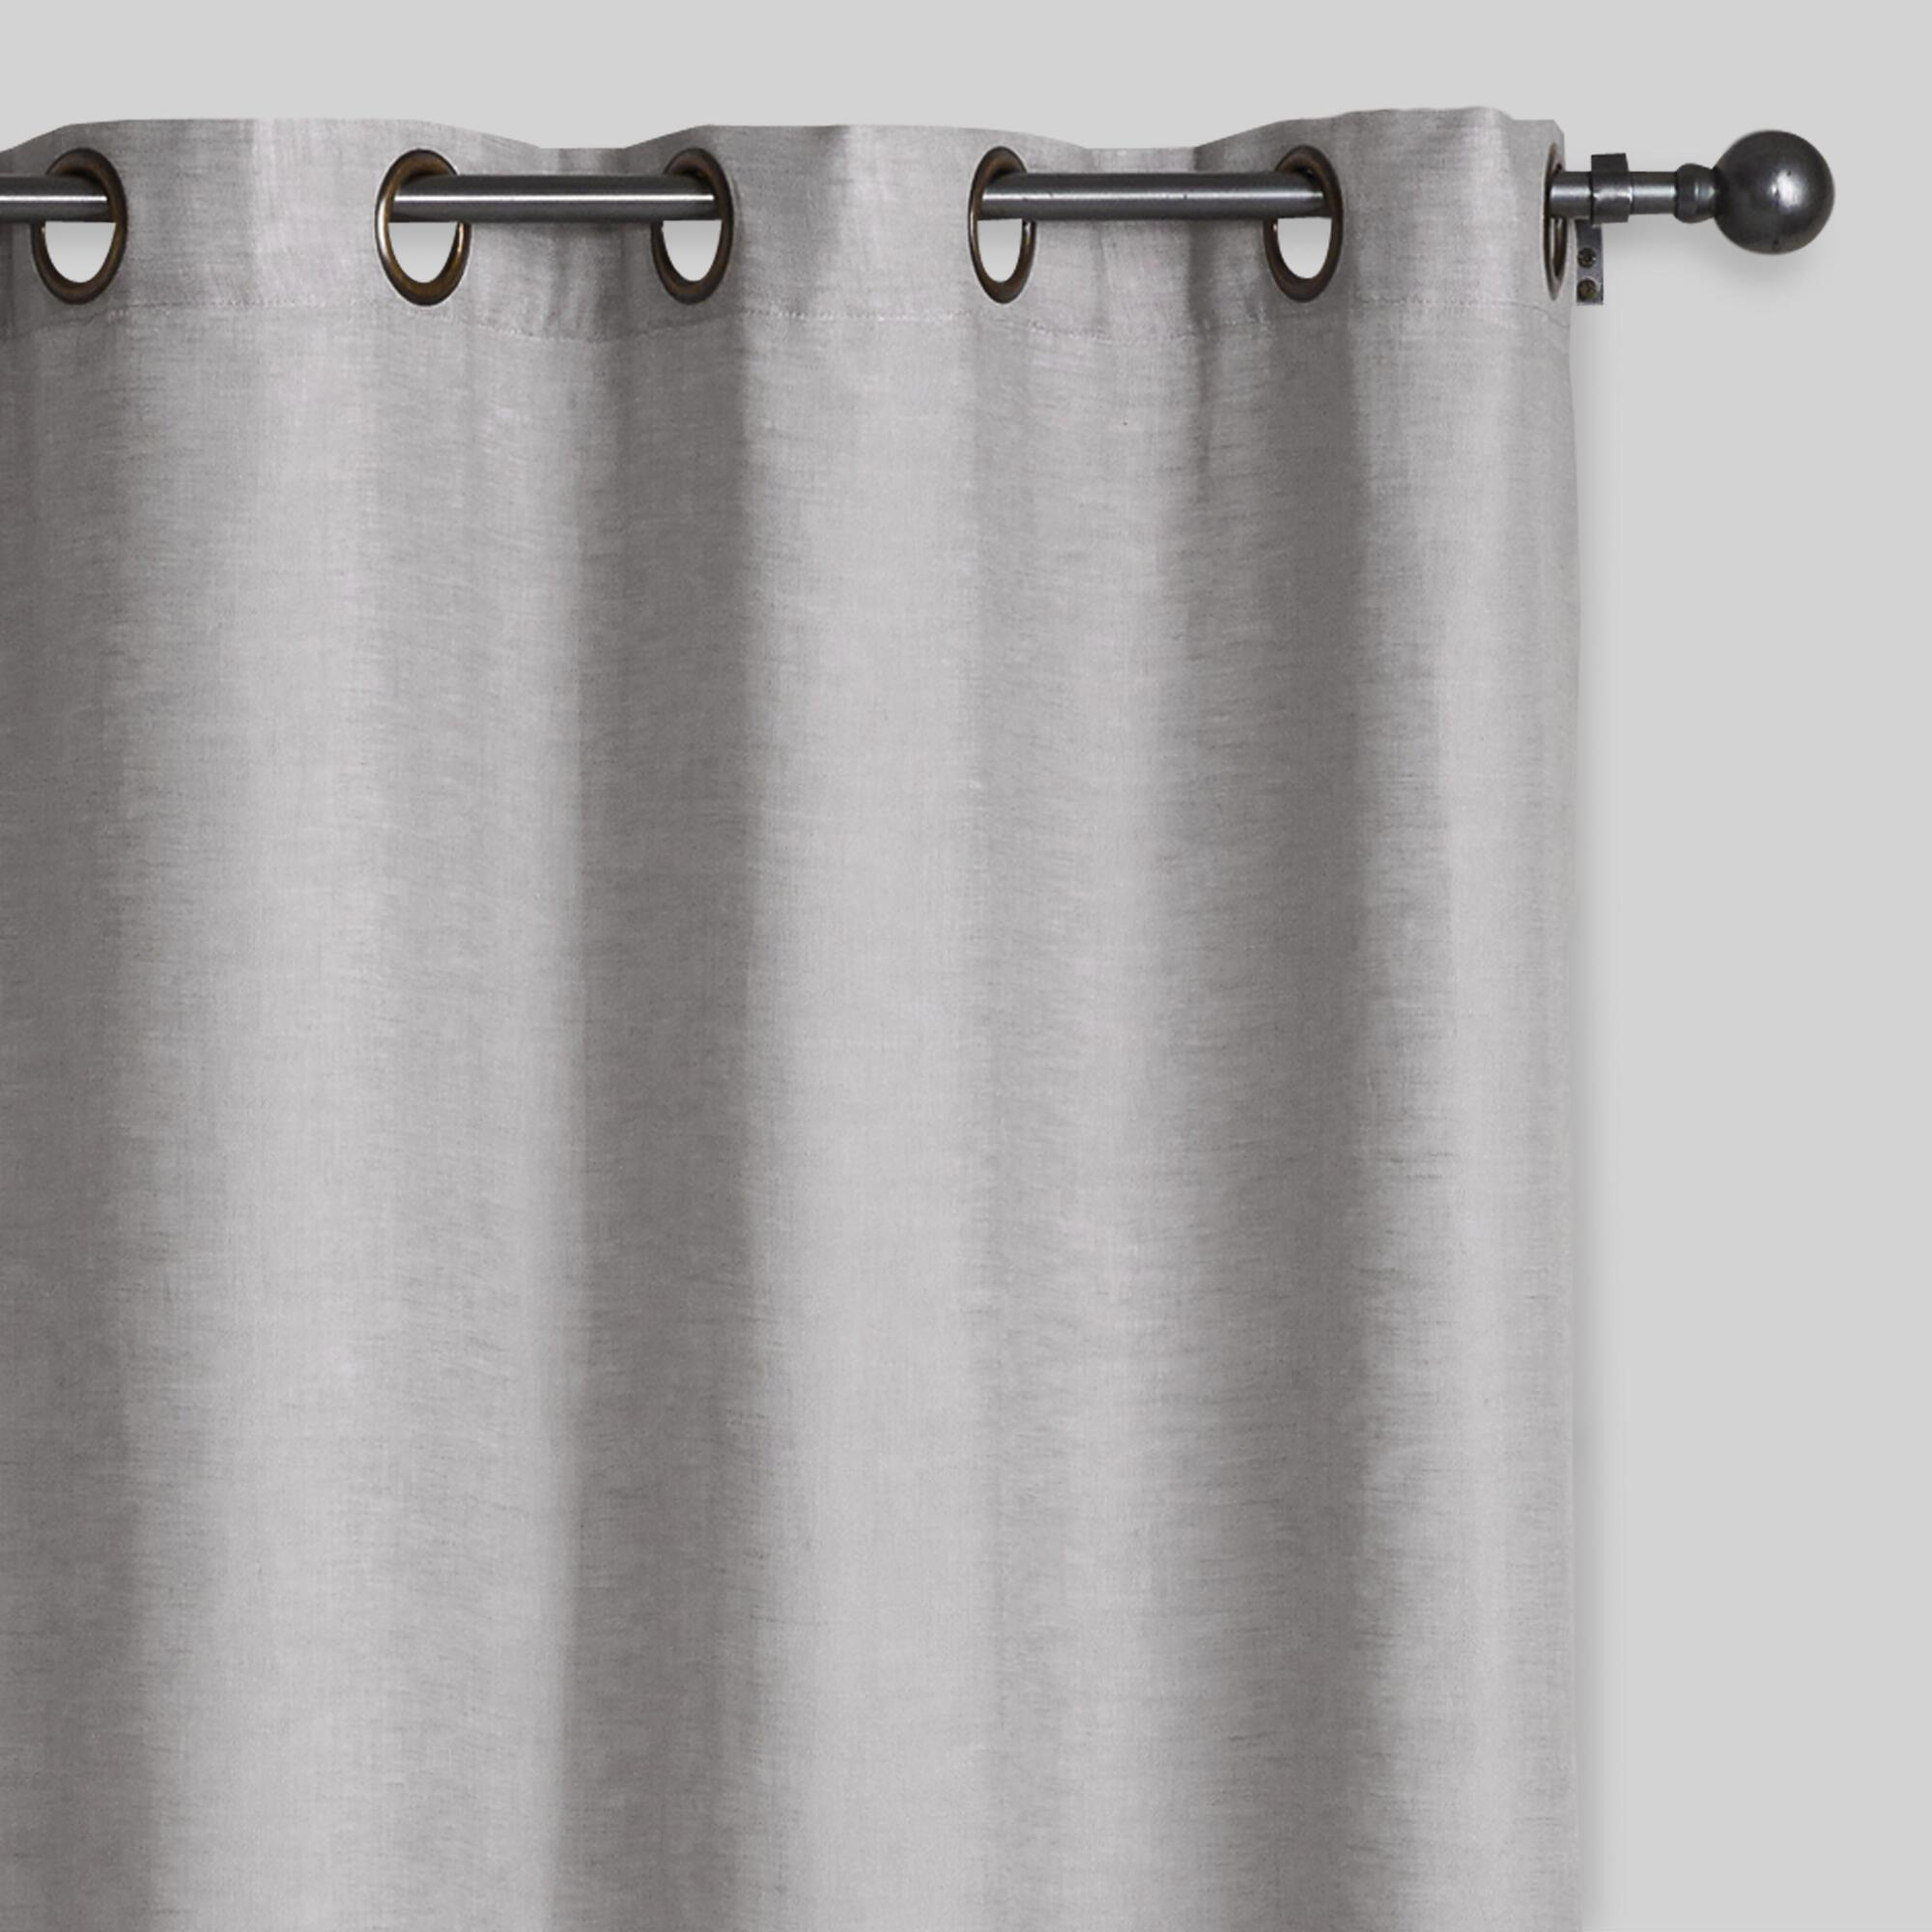 home grey linen settings blackout affordable curtains light modern and decor functions